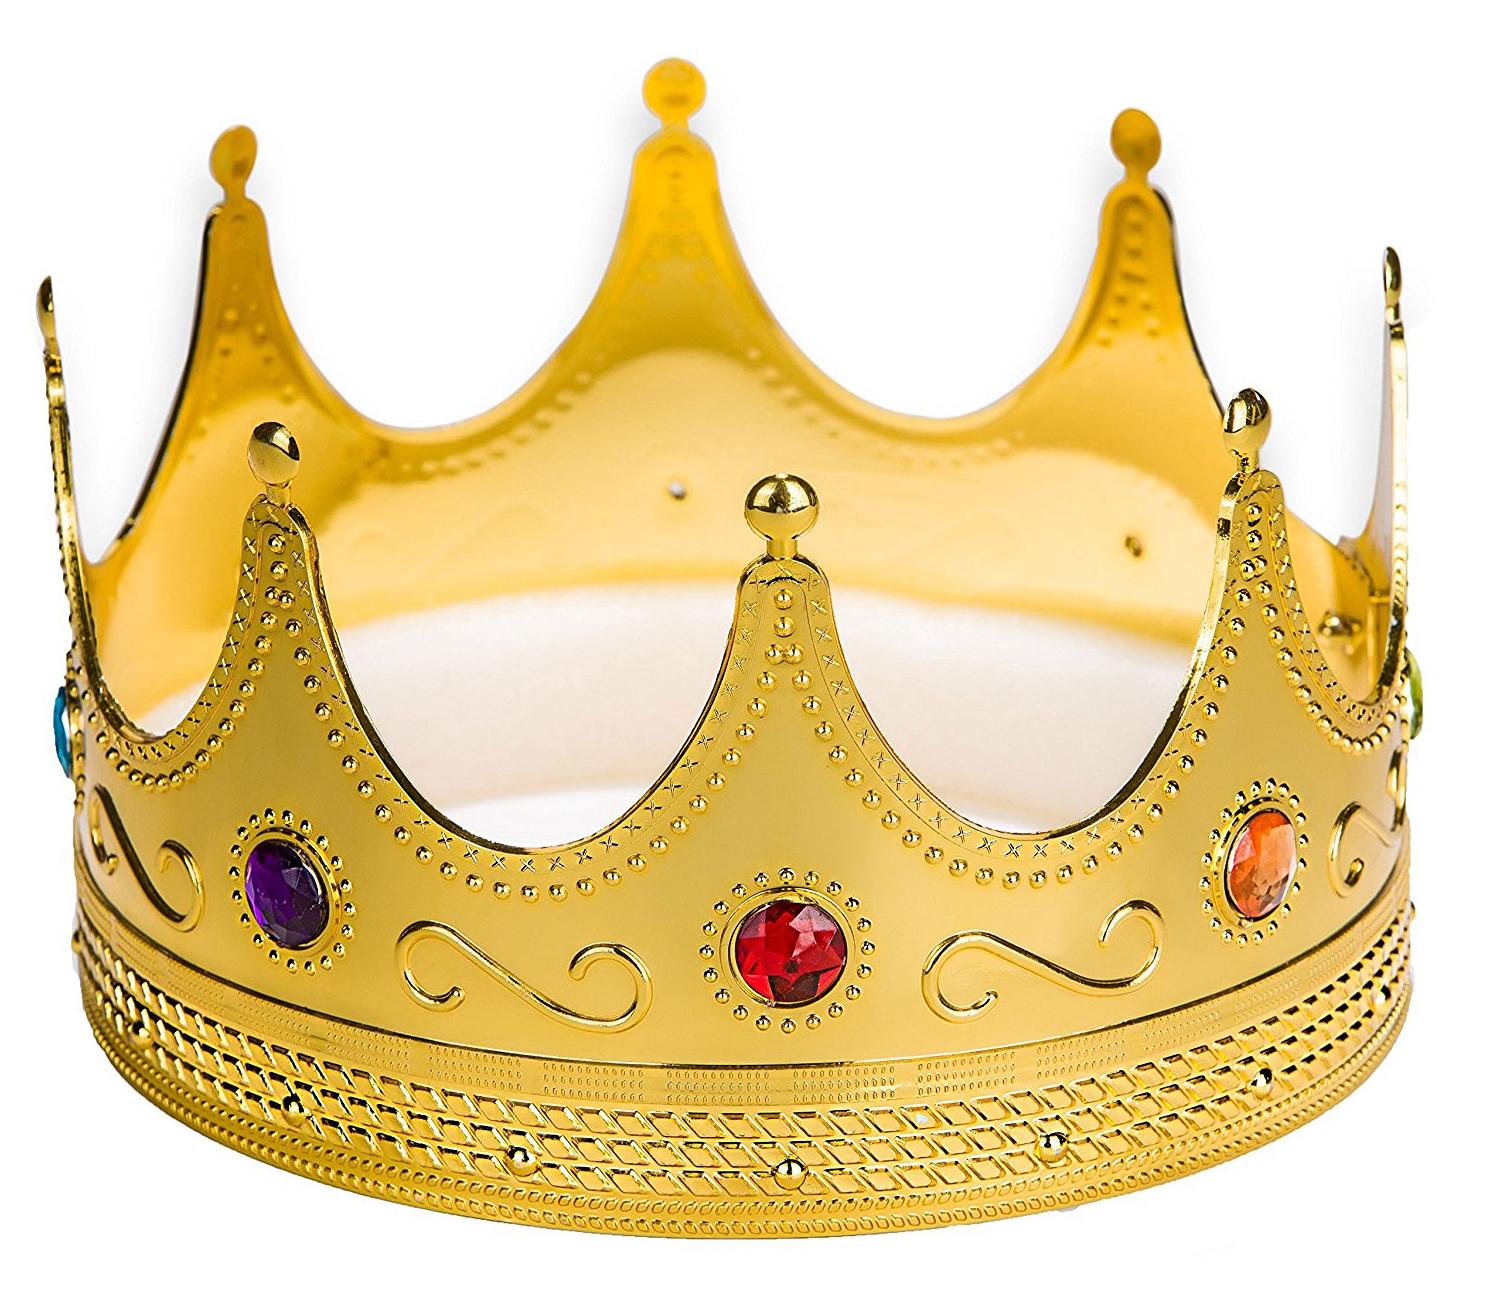 Content:Defining the King